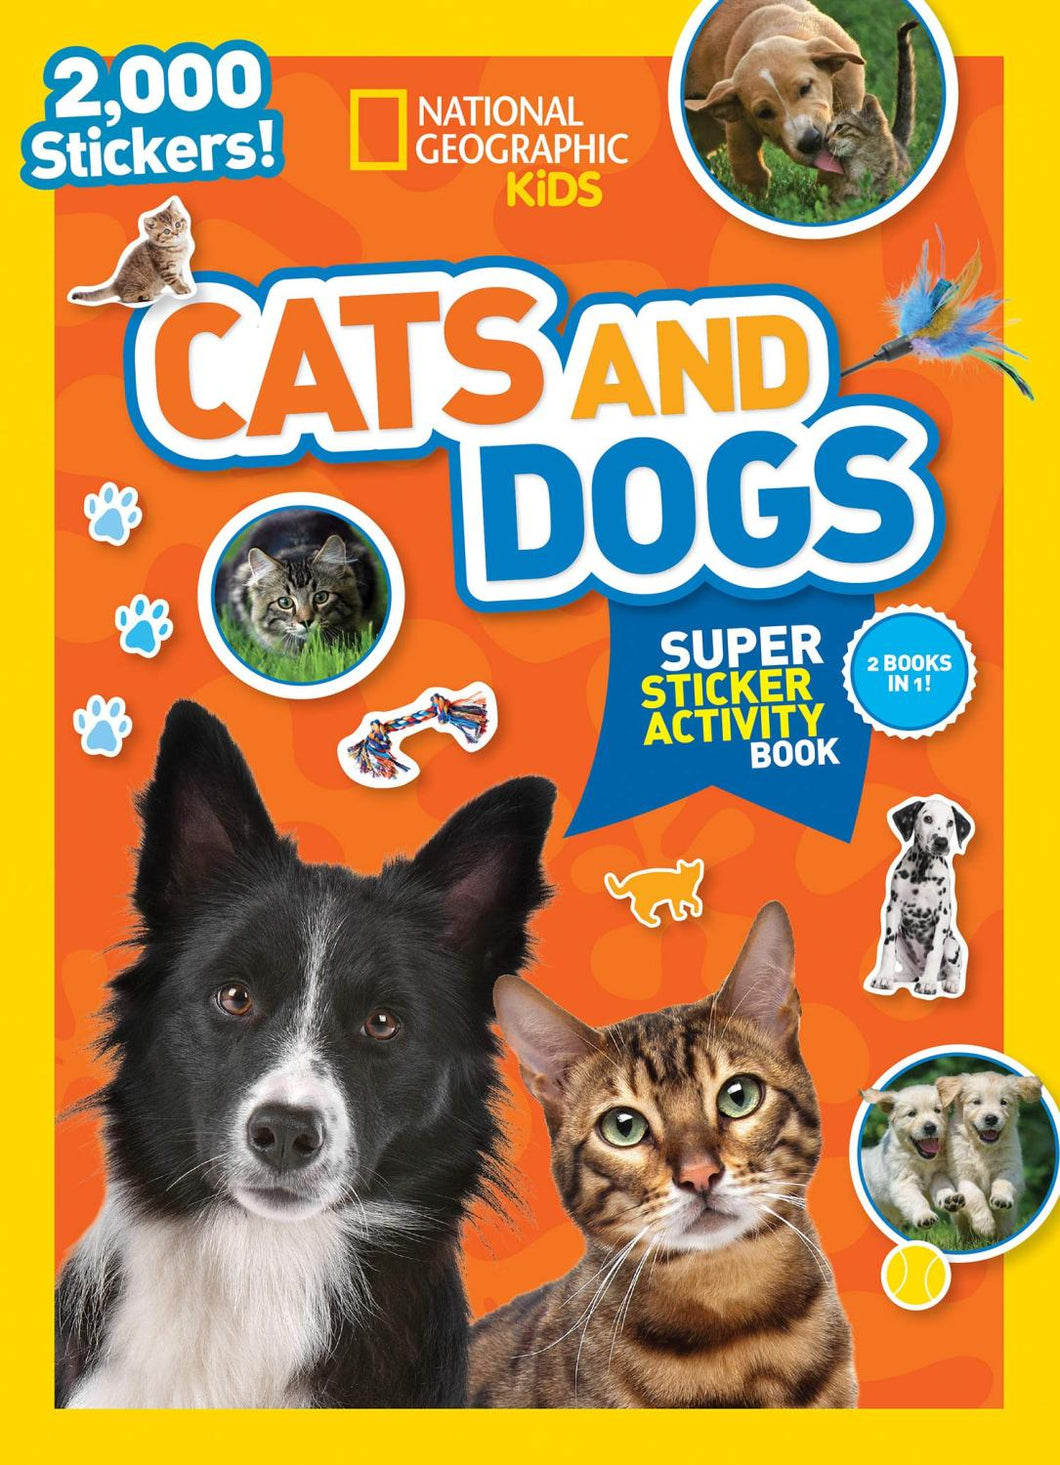 Cats & Dogs Super Sticker Activity Book by National Geographic